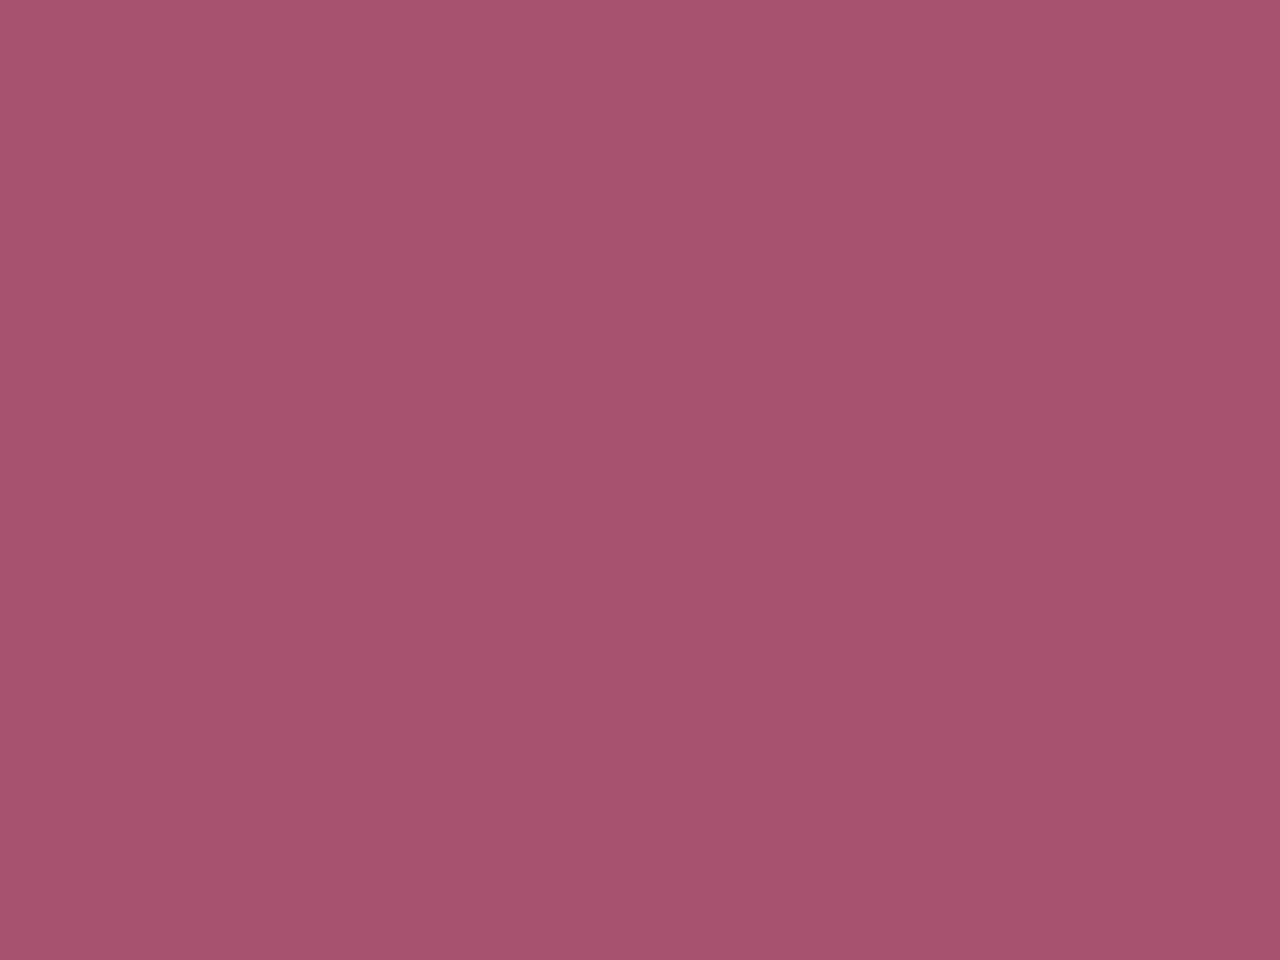 1280x960 China Rose Solid Color Background